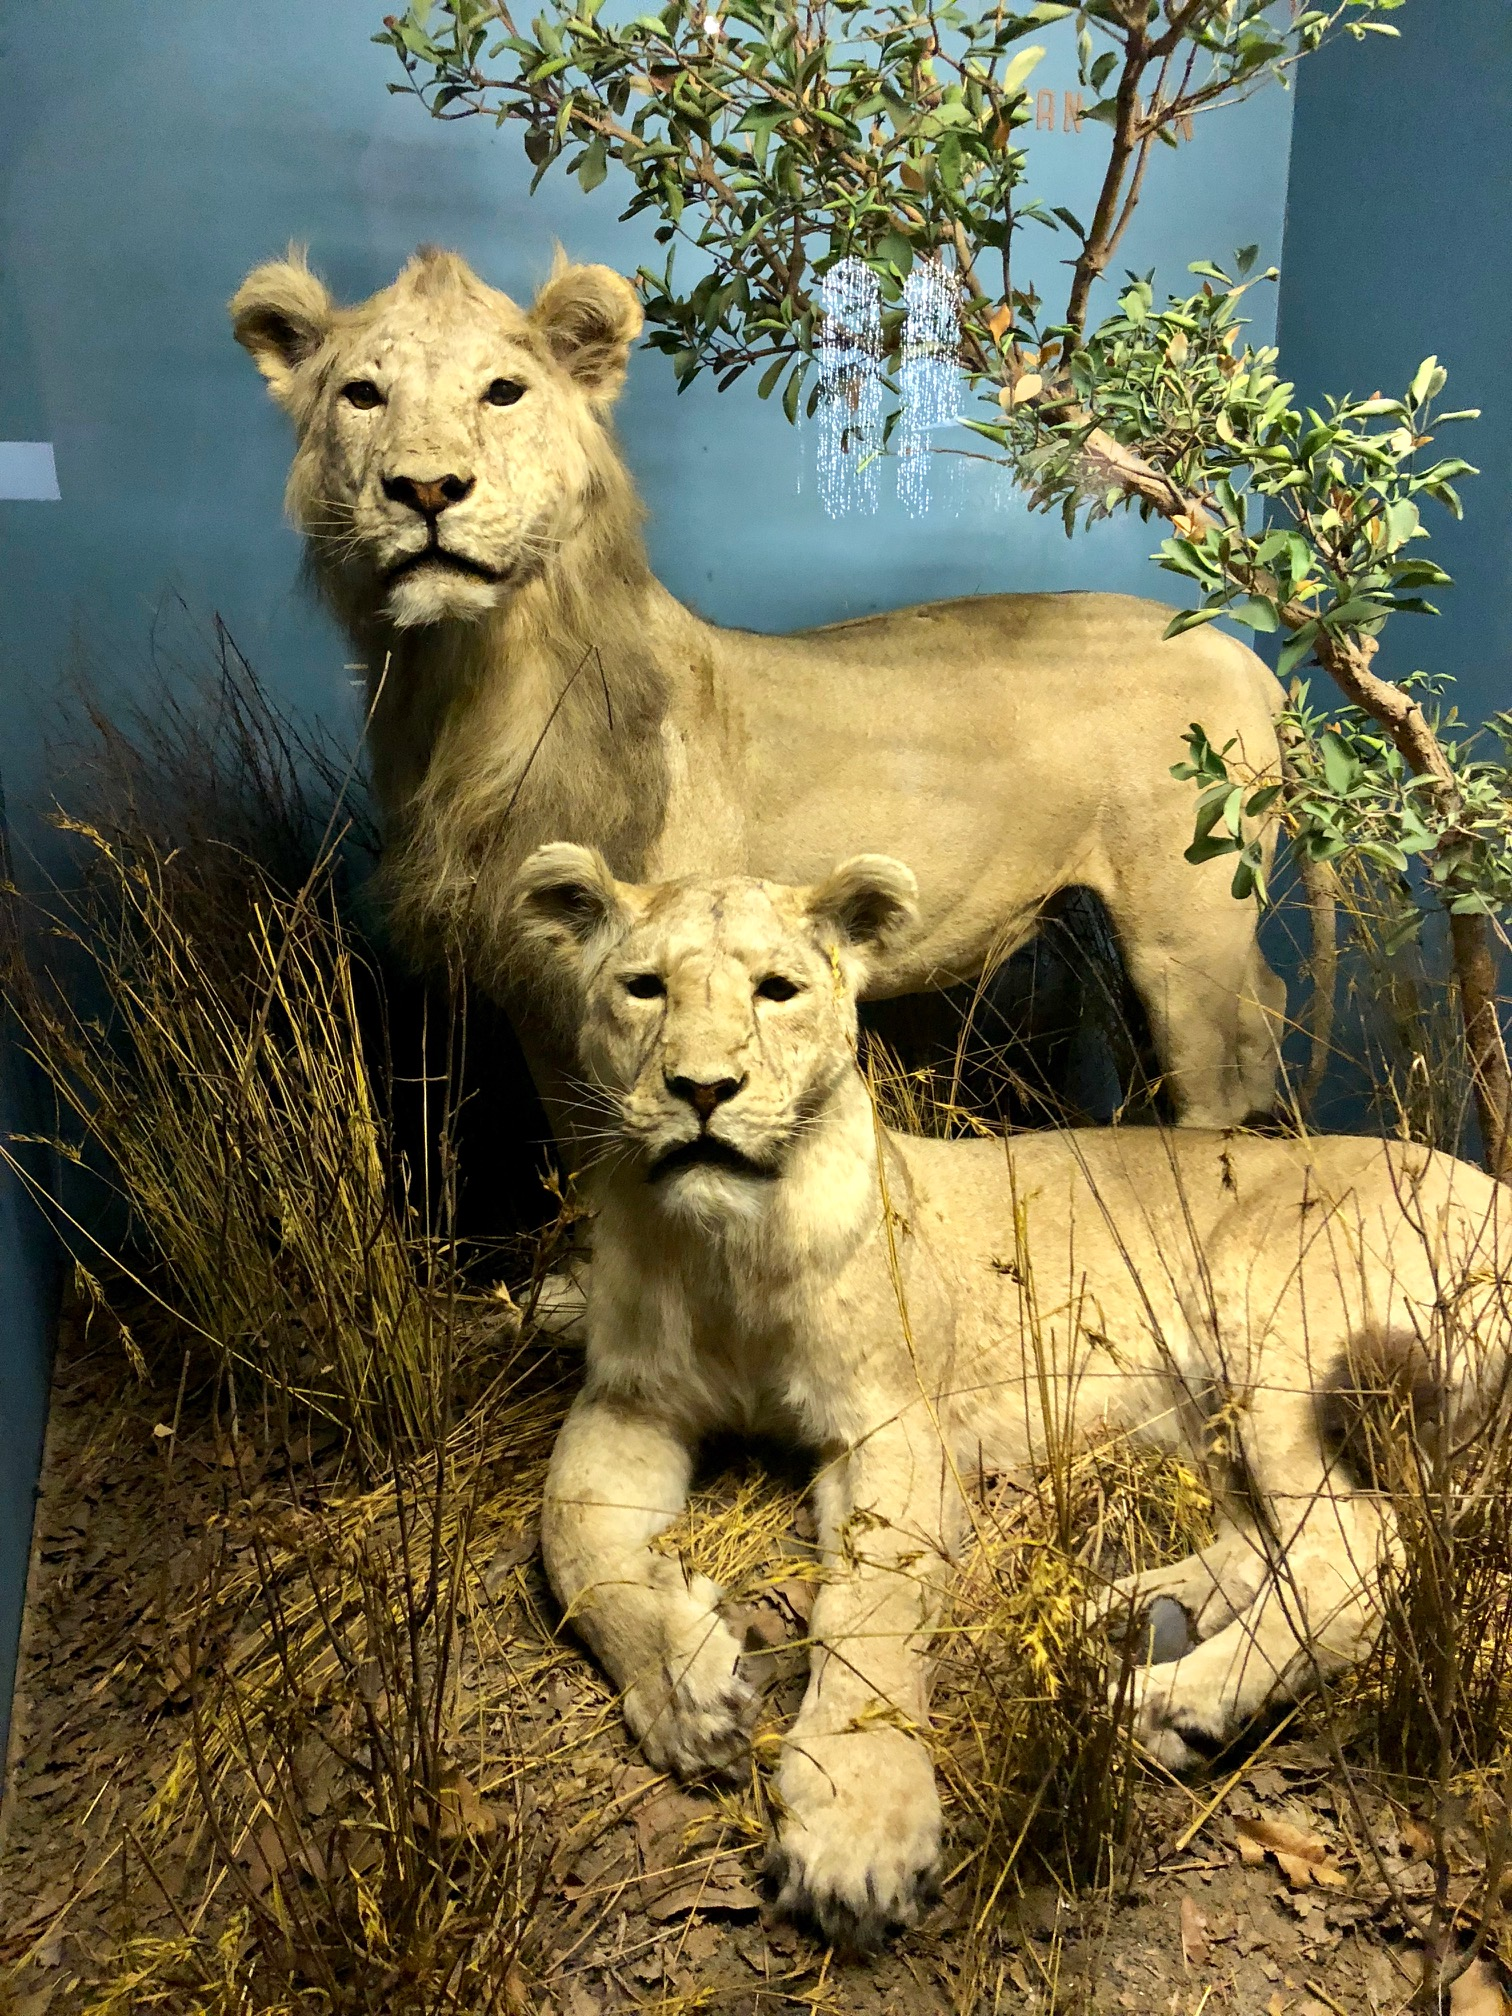 Asiatic Lions differ from African Lions by being slightly smaller and having shorter manes. They also have a longitudinal fold of skin that run along its belly, absent in African Lions.